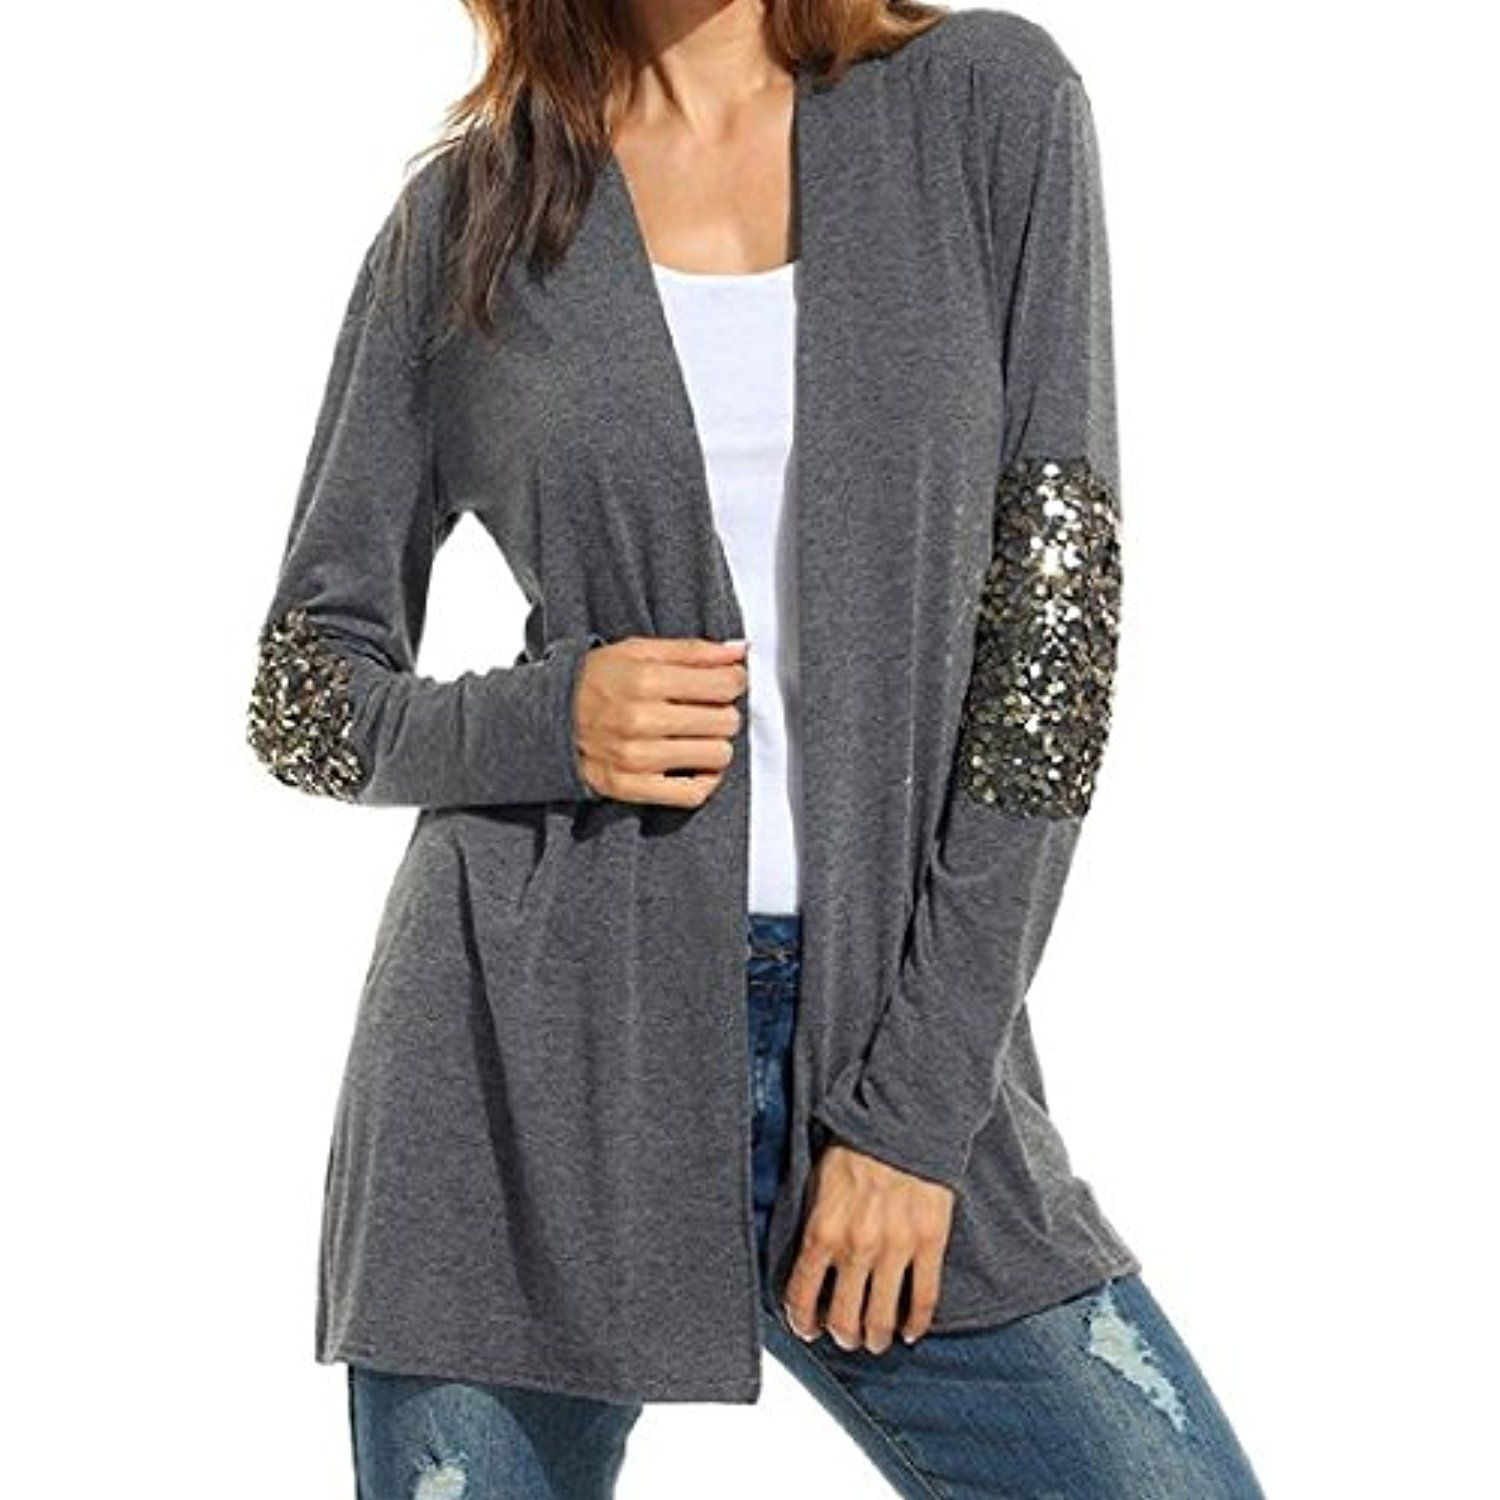 Women Plus Size Classic Sequins Jacket Sweater Cardigan *** Check ...